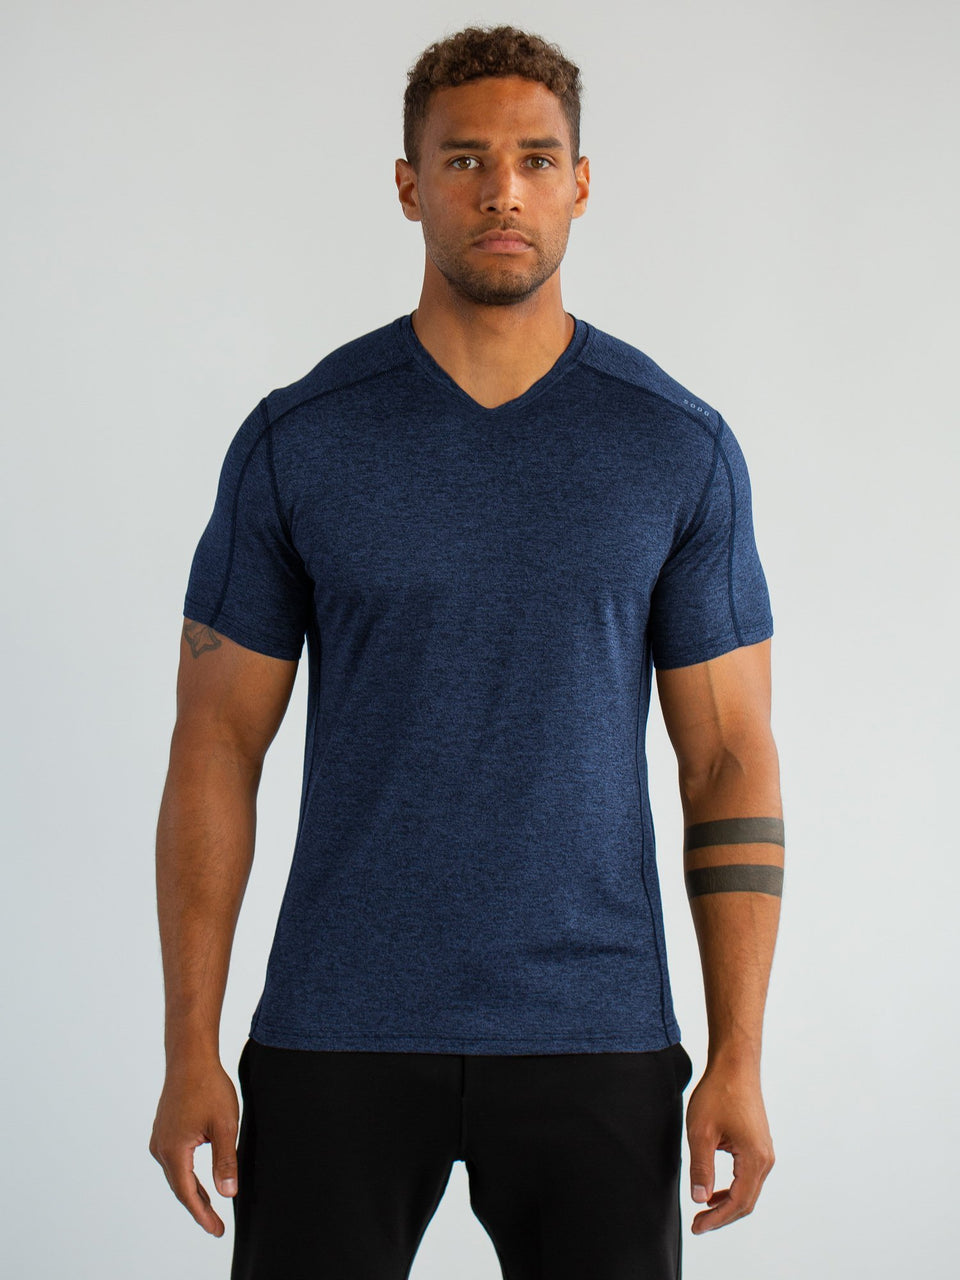 SS High V - Navy Black - Medium - SODO Apparel - Limited Inventory